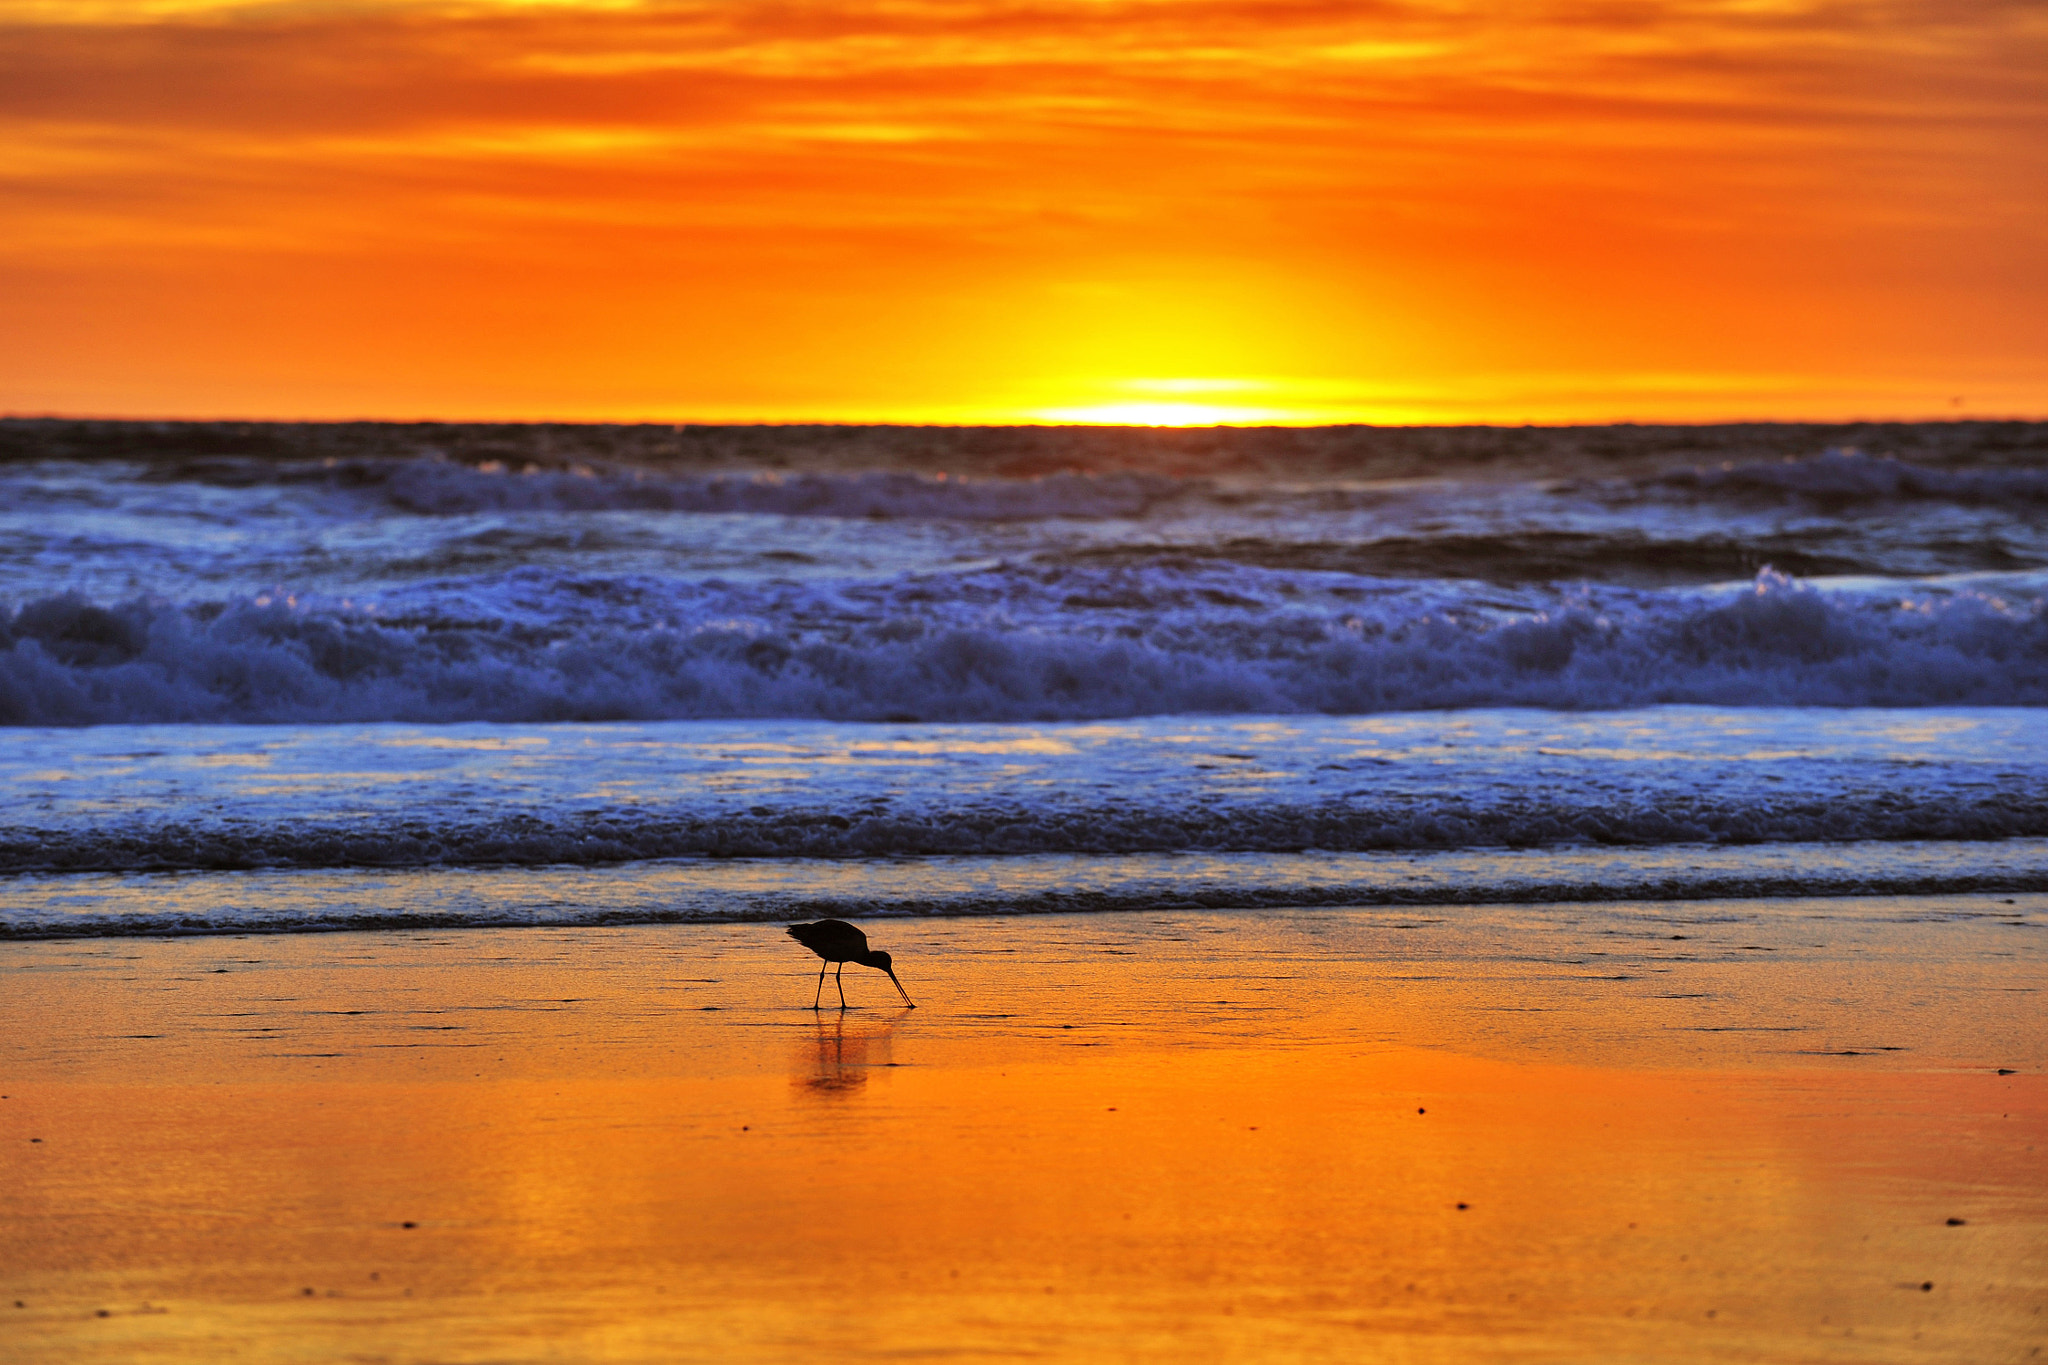 Photograph Sandpiper Digs for Sandcrabs at Sunset in Oceanside - January 28 by Rich Cruse on 500px